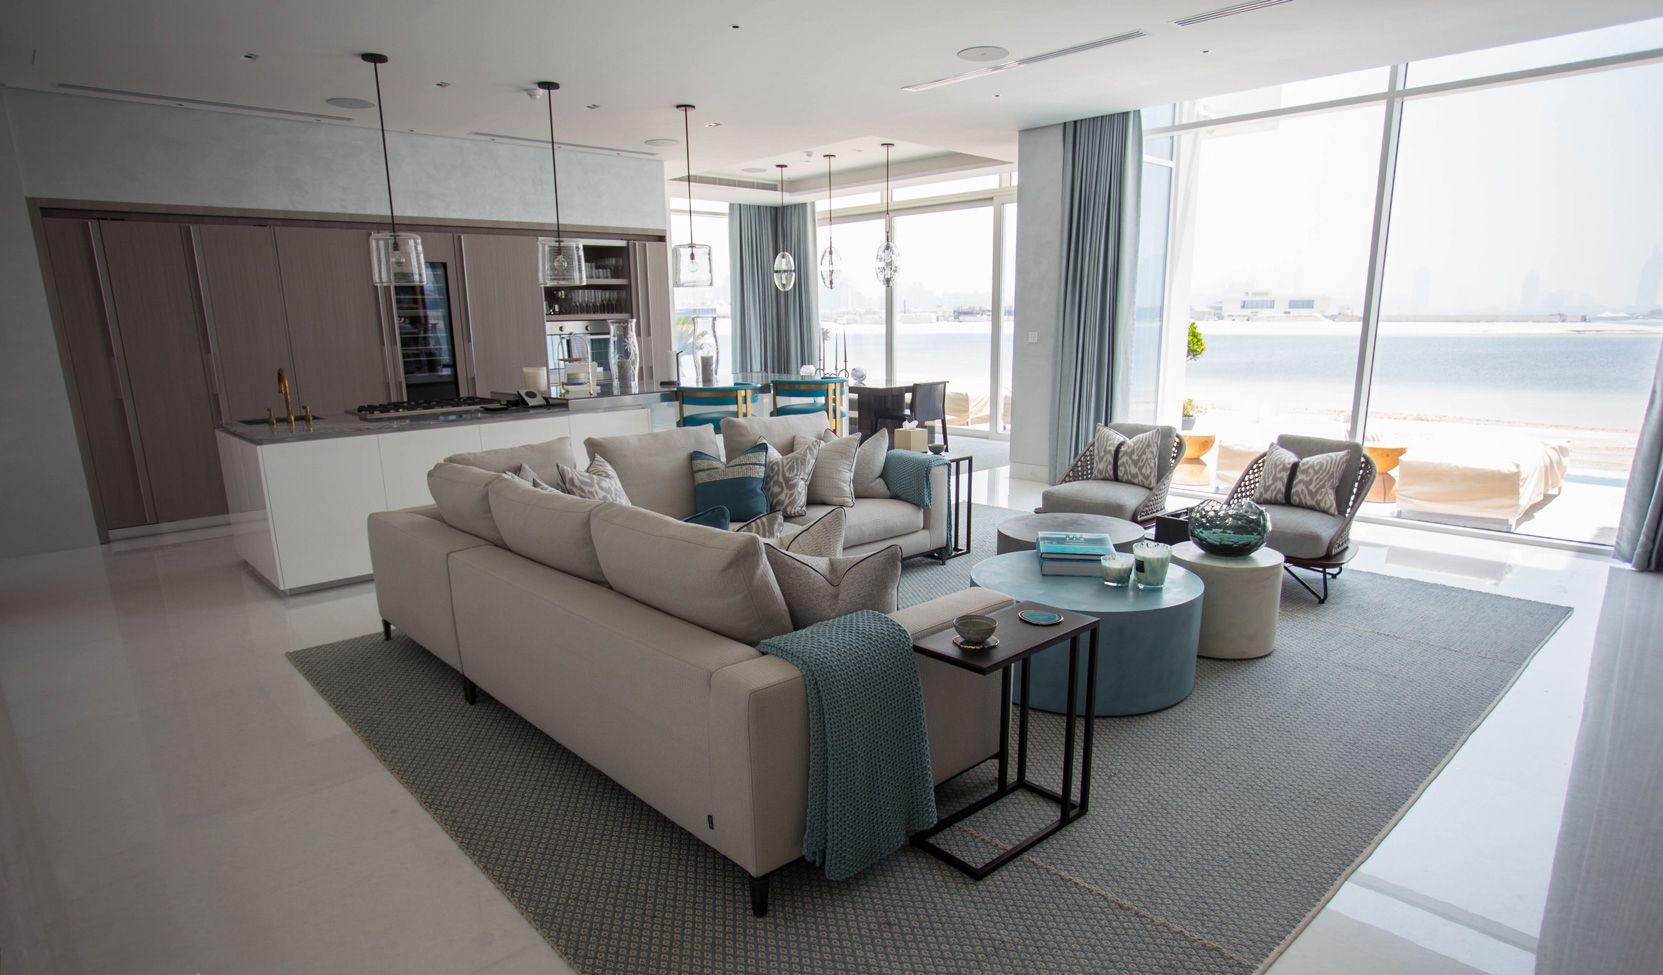 Interior design fit out projects for companies private for Al zubair furnishing interior decoration llc